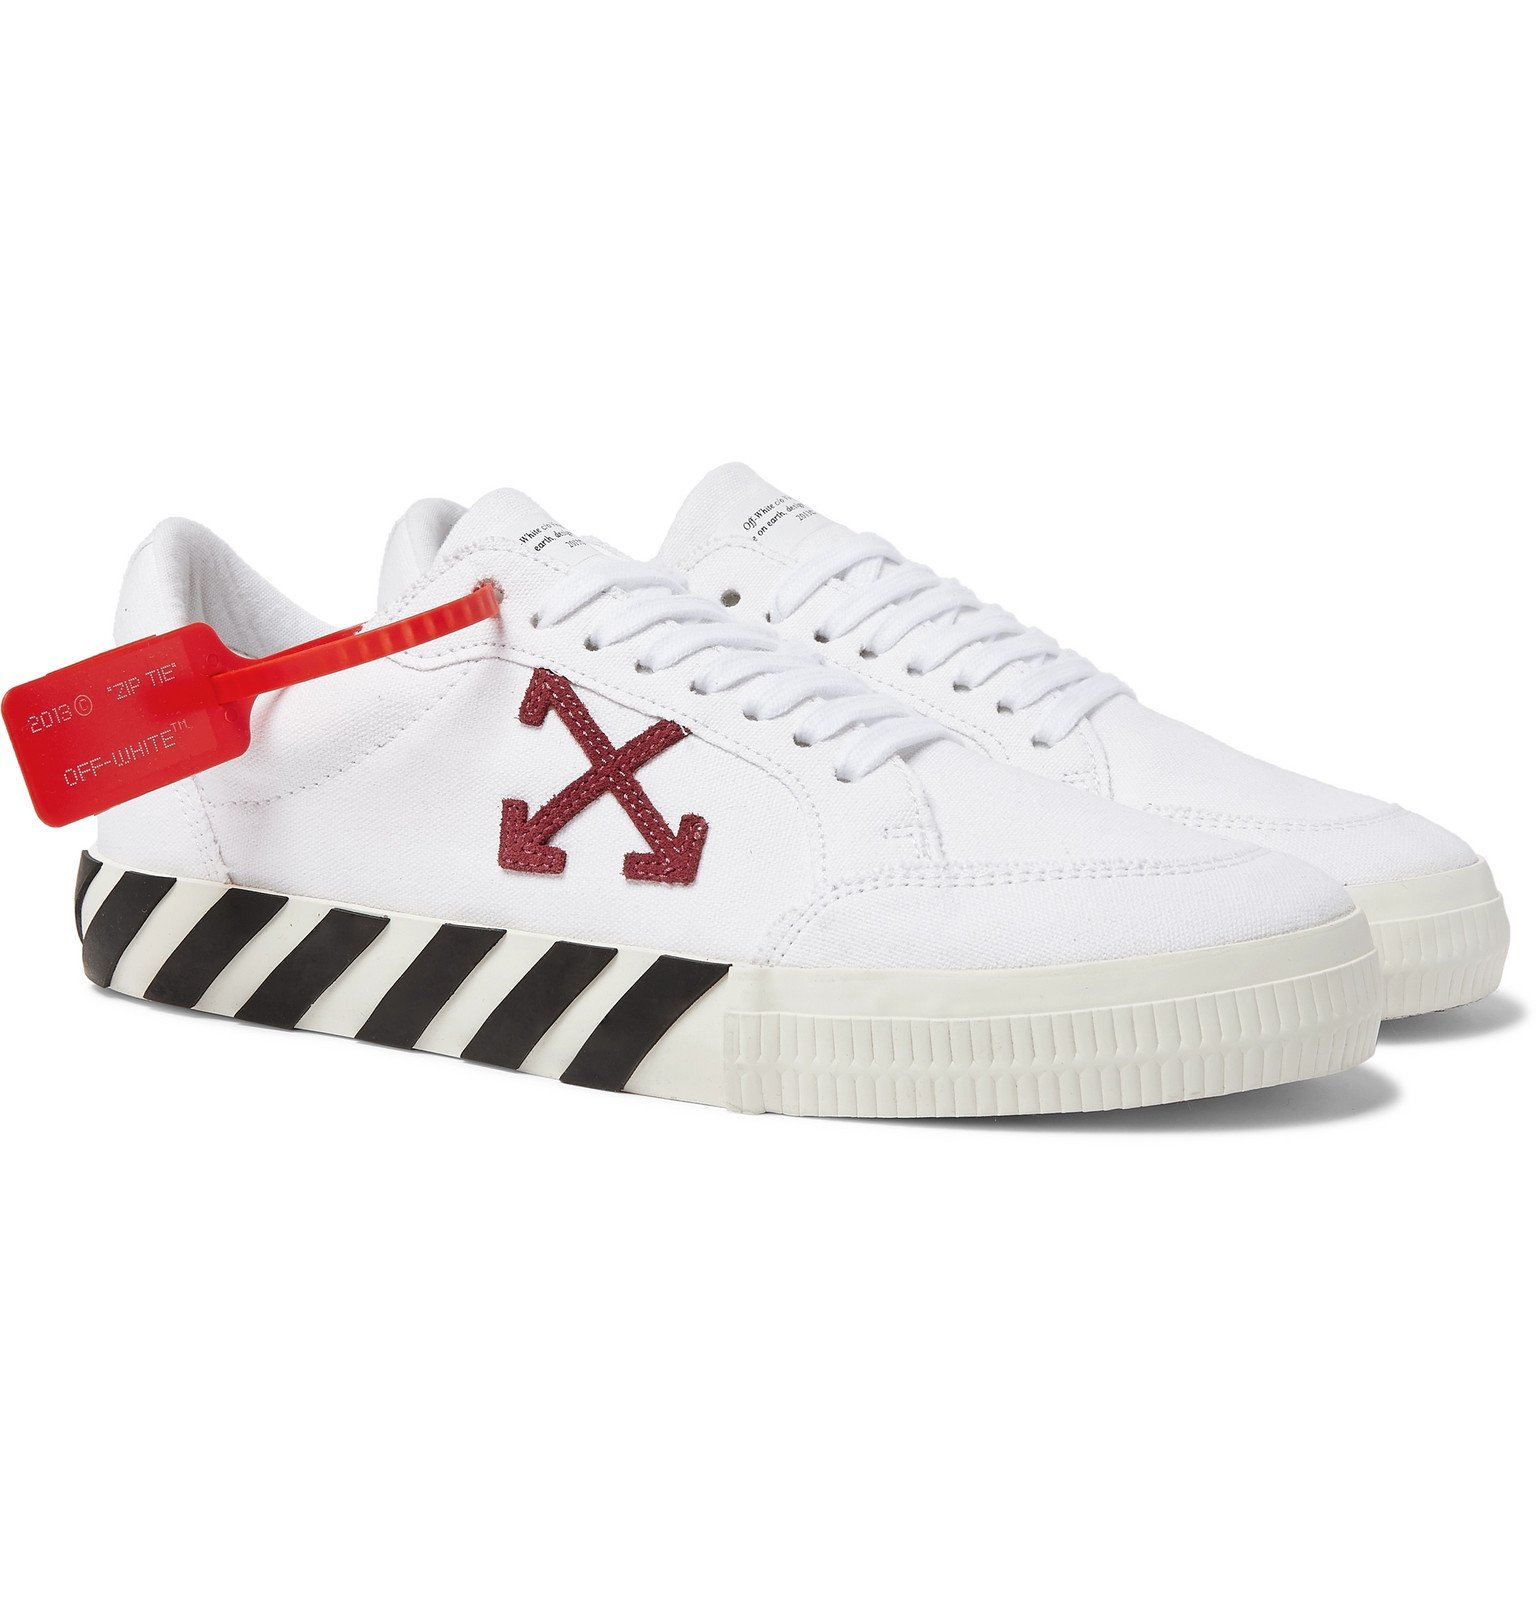 Suede-Trimmed Canvas Sneakers